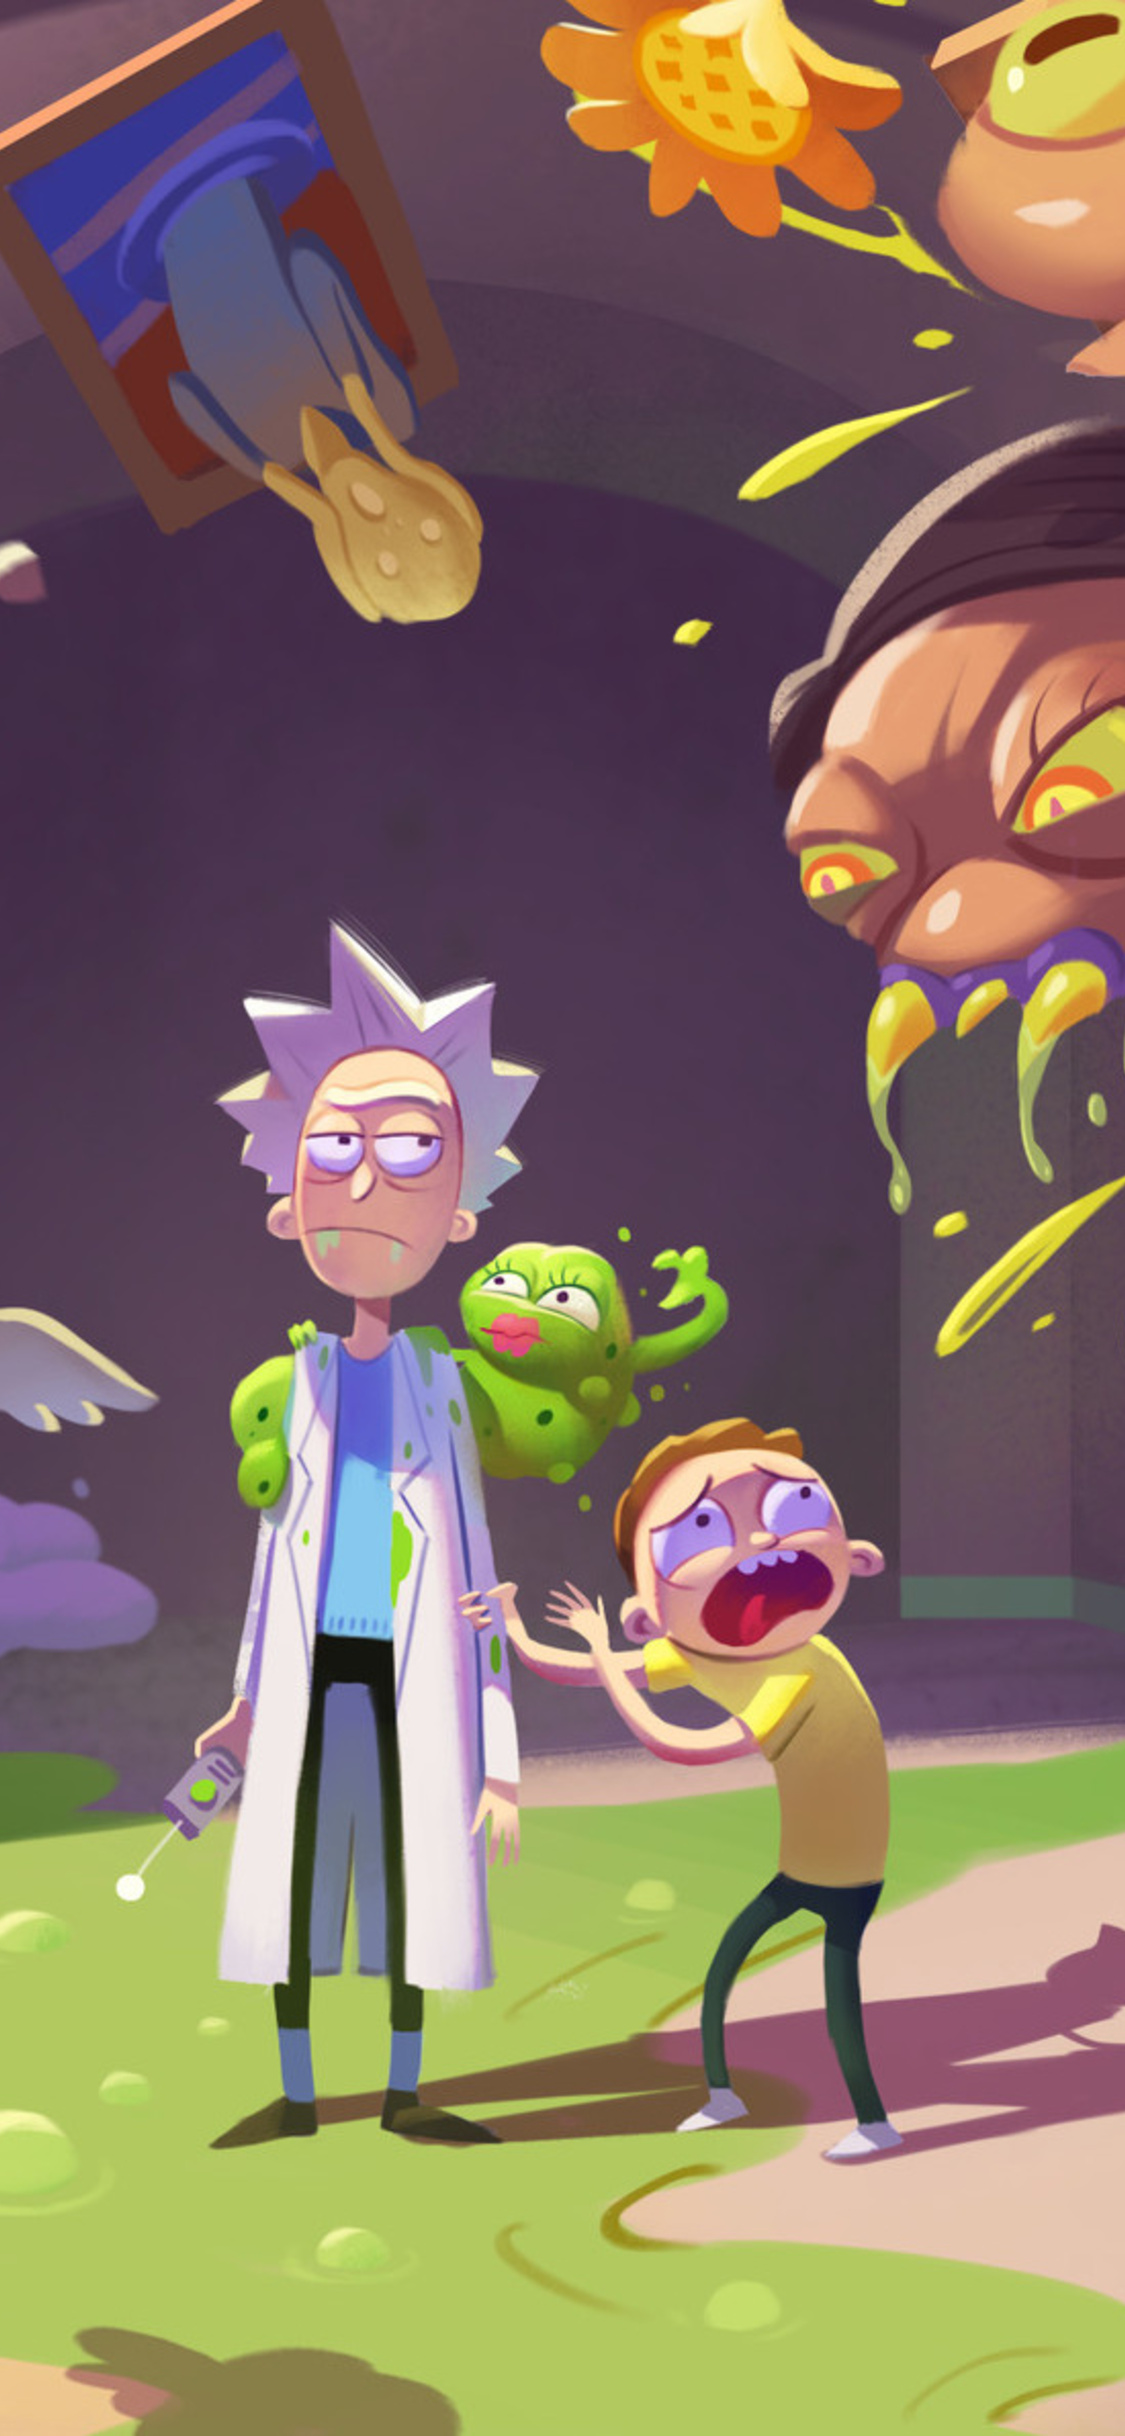 1125x2436 Rick And Morty Hd Art Iphone Xs Iphone 10 Iphone X